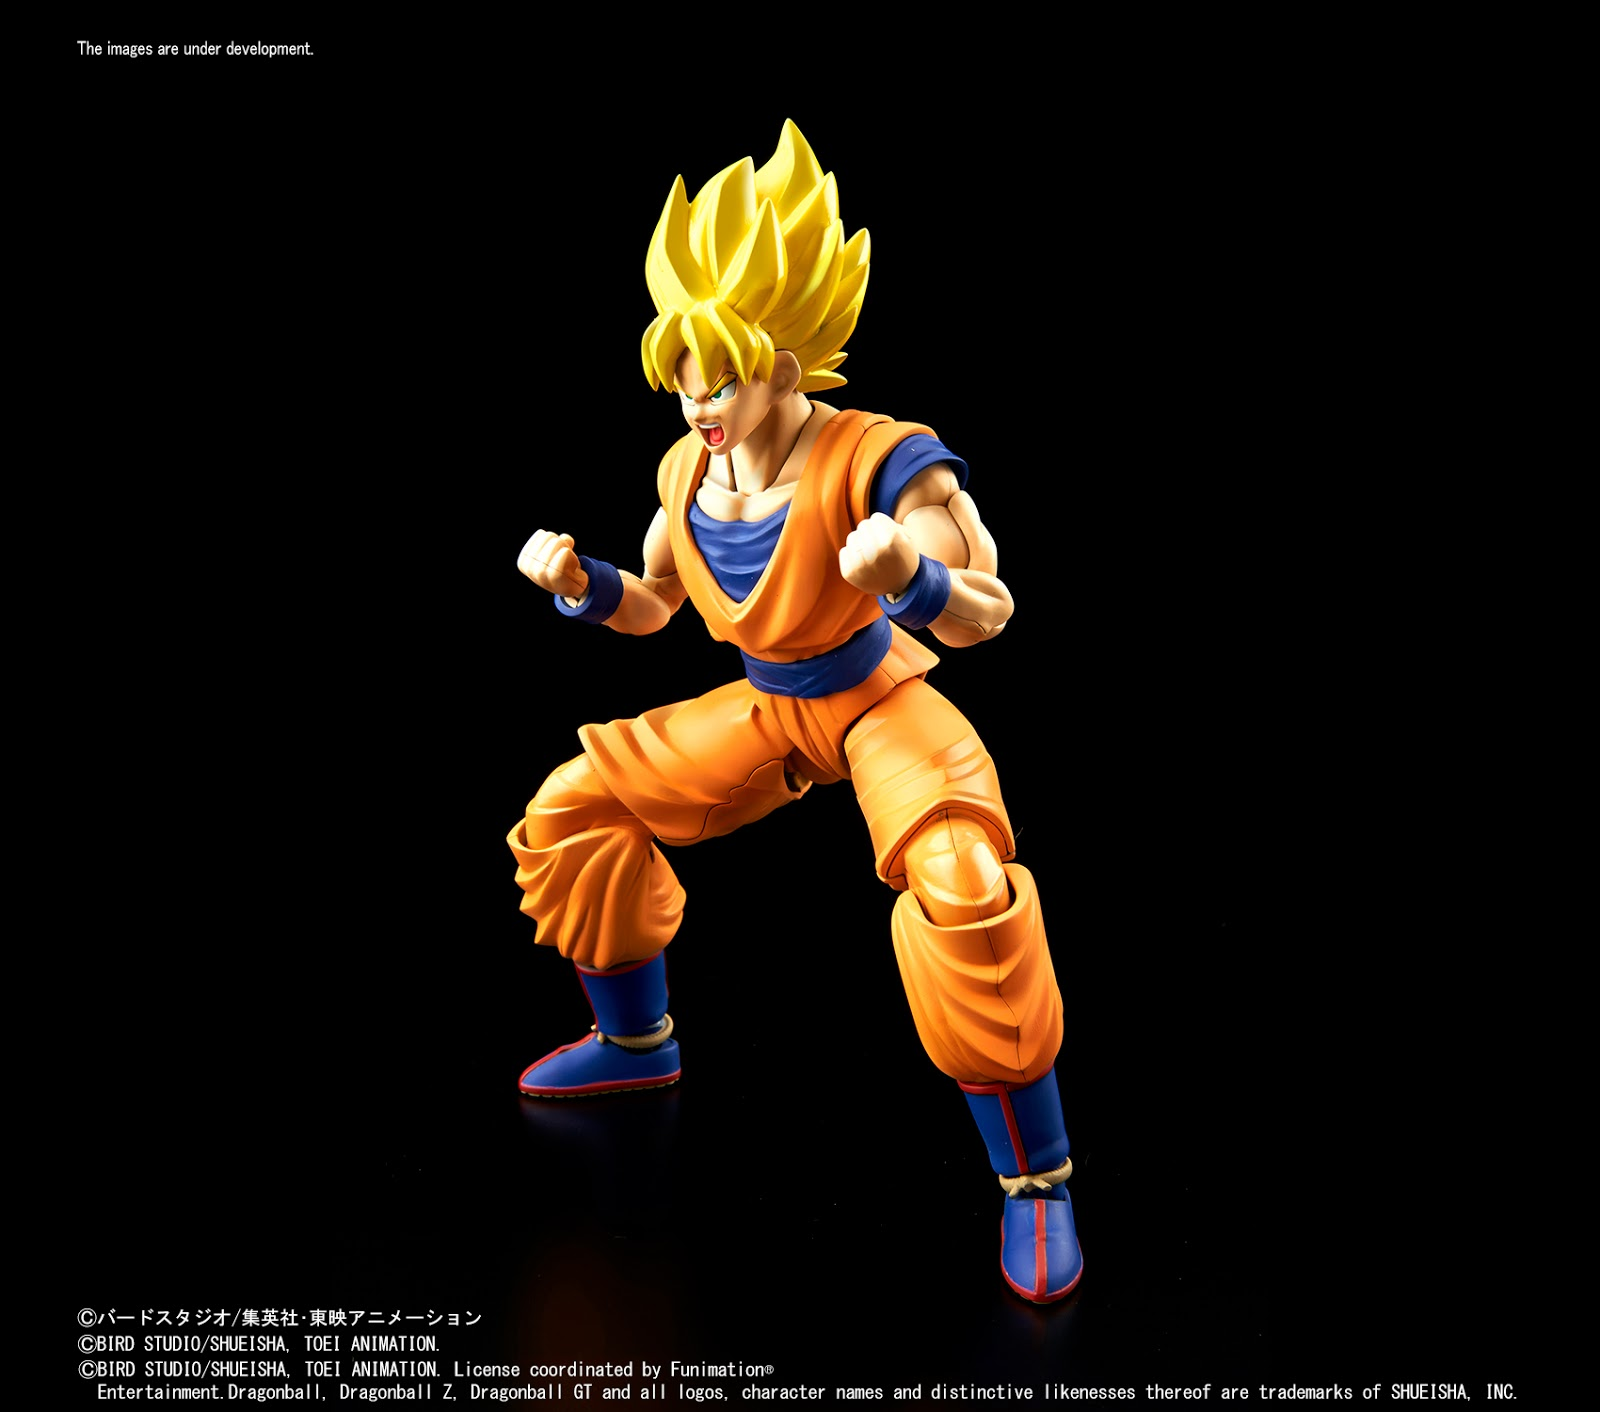 Also Check Out Displays Of A Pair Upcoming New Dragon Ball Z Model Kits From Bandais Innovative Figure Rise Line